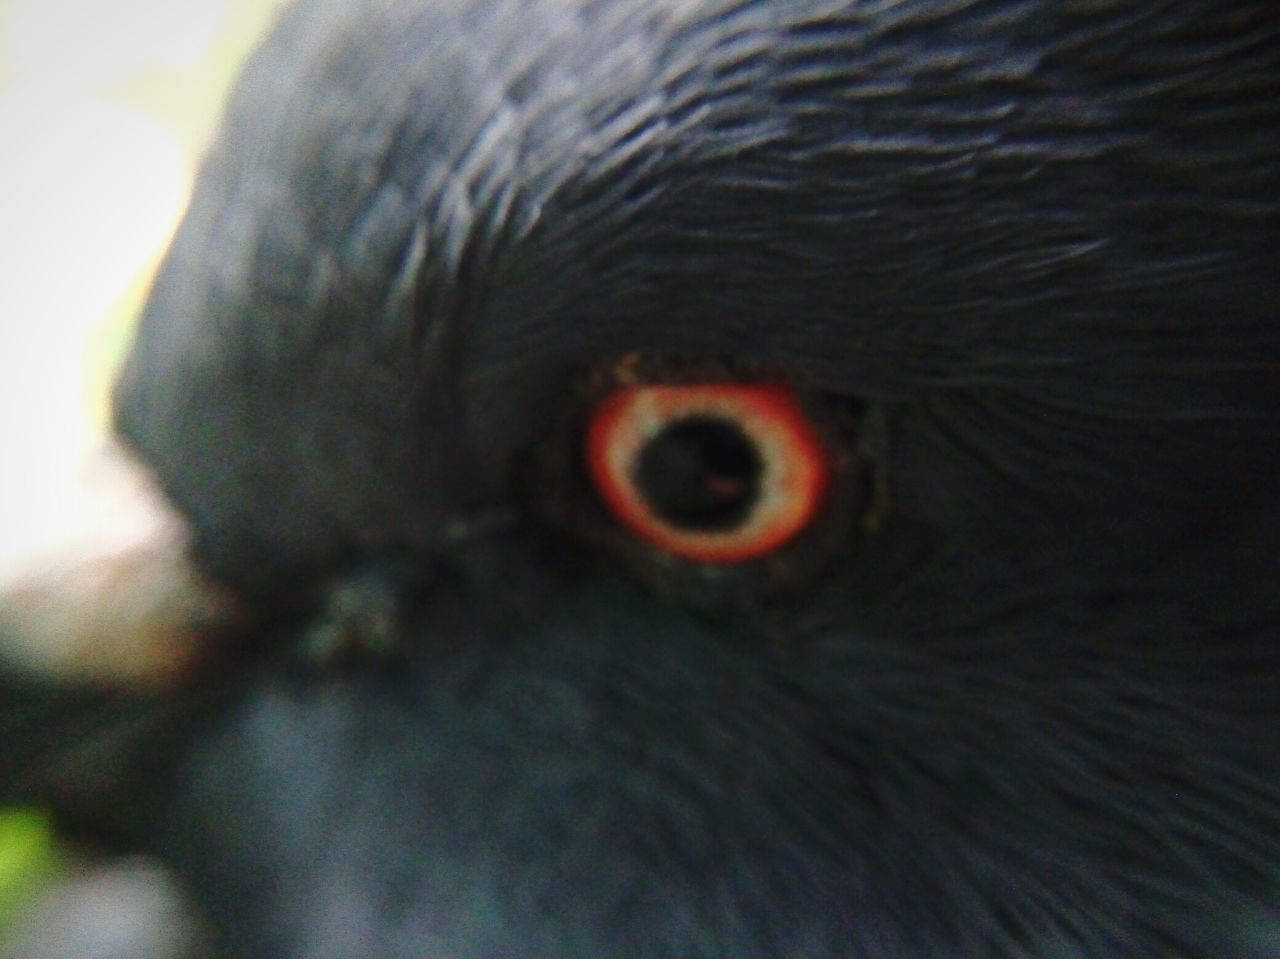 one animal, close-up, animal head, animal eye, animal themes, looking at camera, portrait, bird, eyeball, beak, animals in the wild, no people, iris - eye, outdoors, eyesight, day, nature, bird of prey, mammal